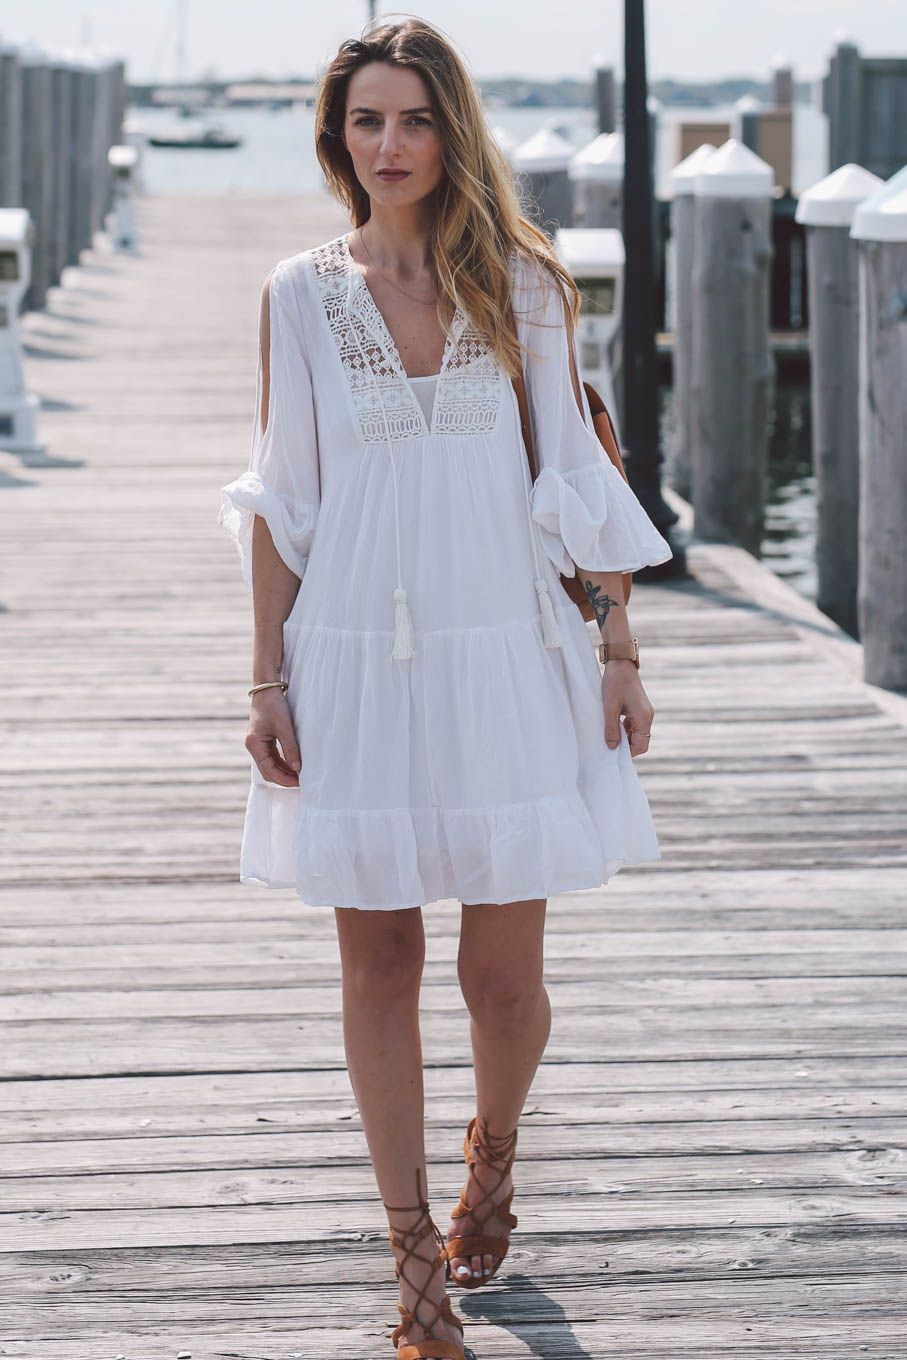 Clearance Online Fake Cheap From China Castaway Lace Tunic Dress - Summer white French Connection Sale For Cheap Free Shipping Official Outlet Browse P977sIQI